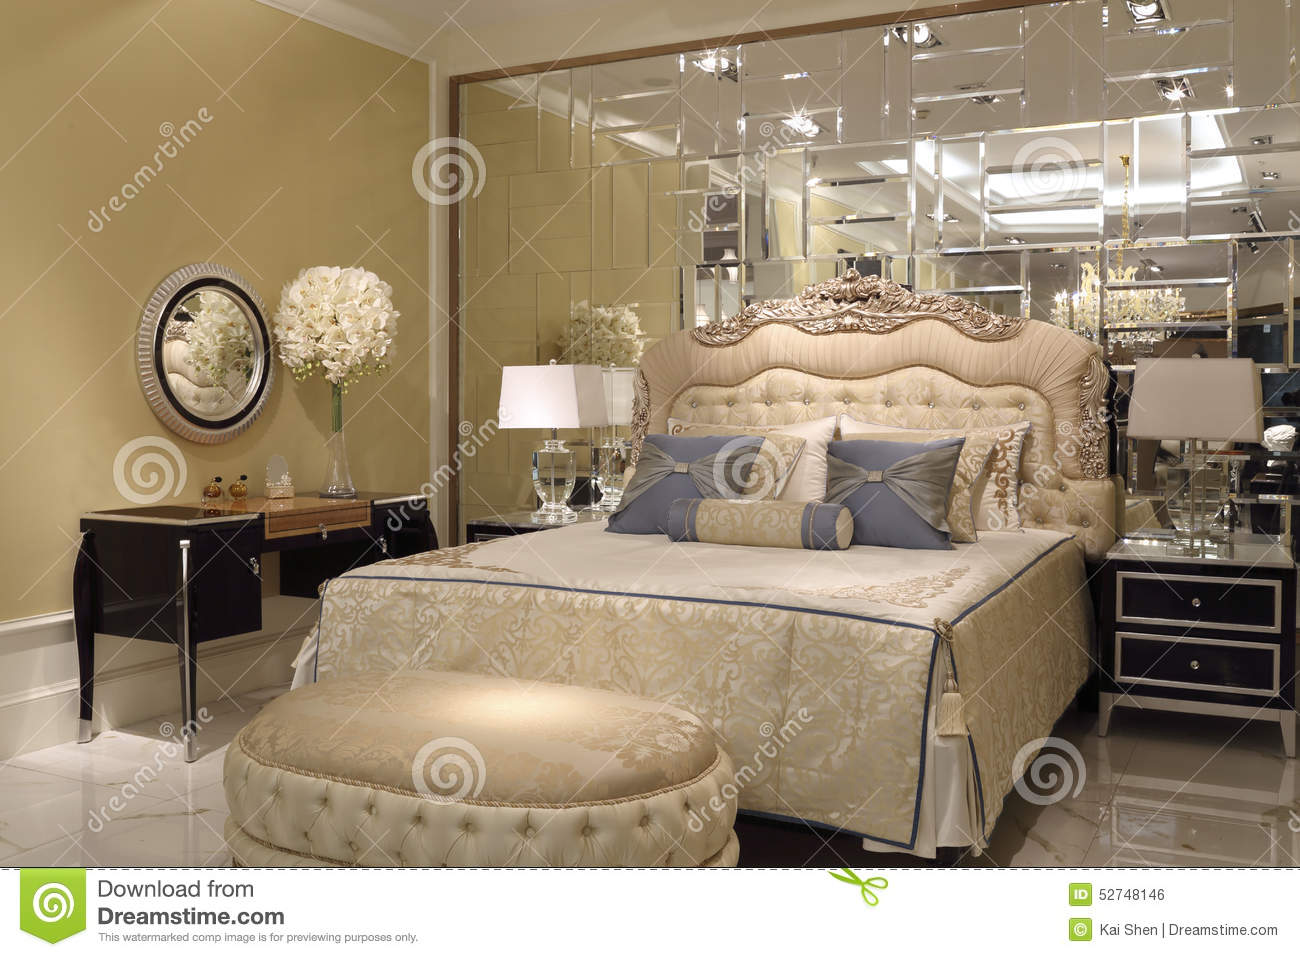 le mur de miroir dans la chambre coucher photo stock image du tage chemin e 52748146. Black Bedroom Furniture Sets. Home Design Ideas